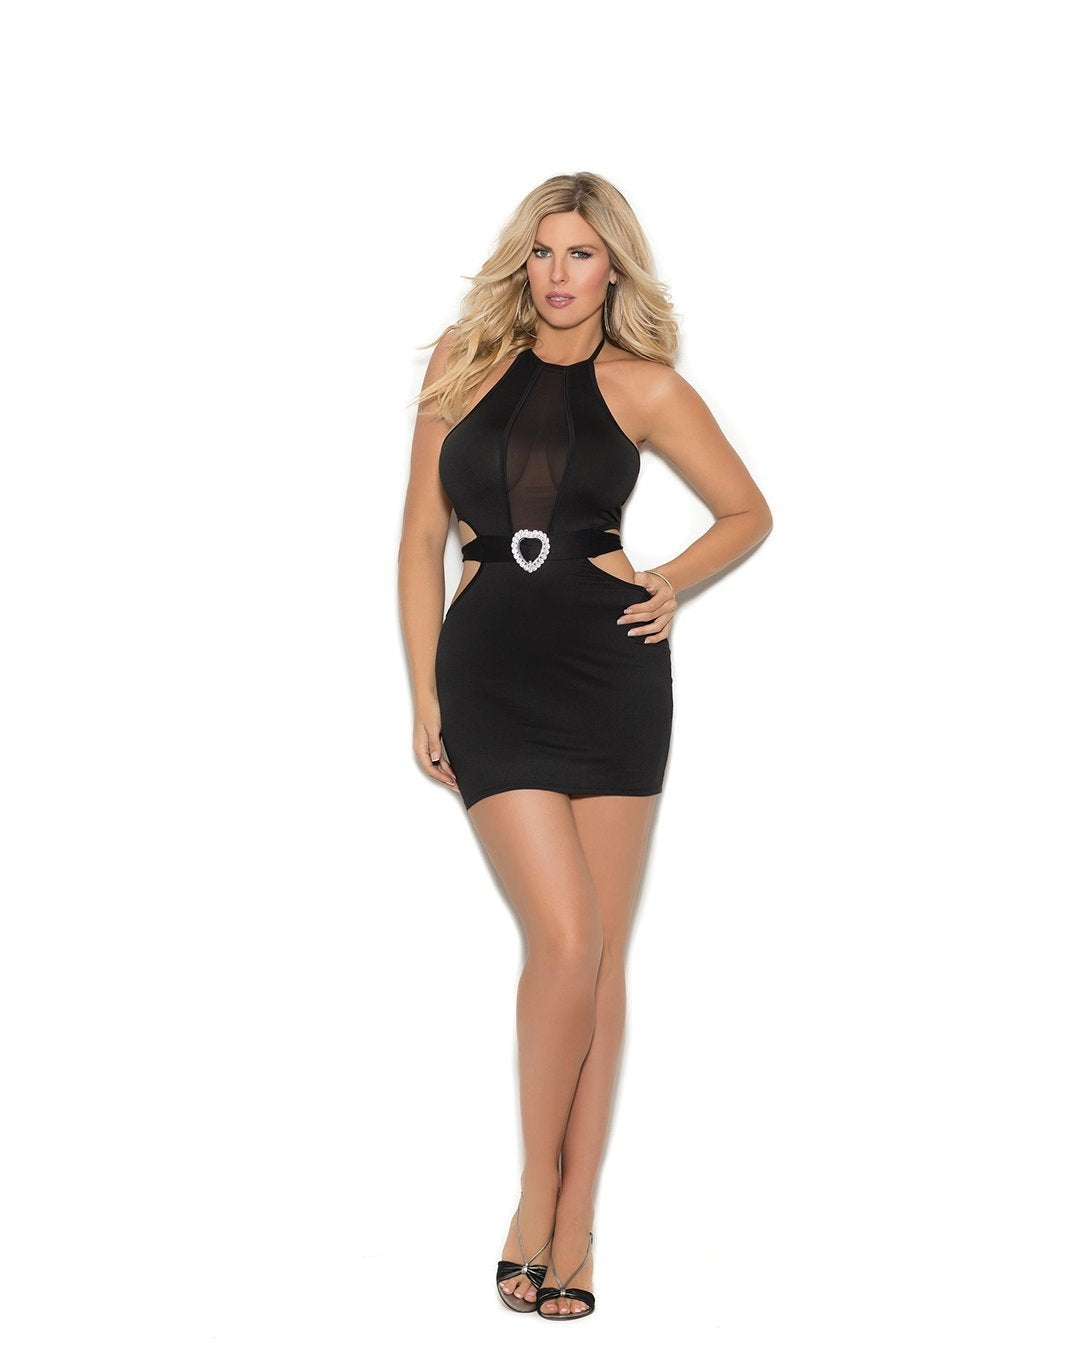 Halter Neck Mini Dress with Attached Heart Belt club wear size smallcolor blackNakees